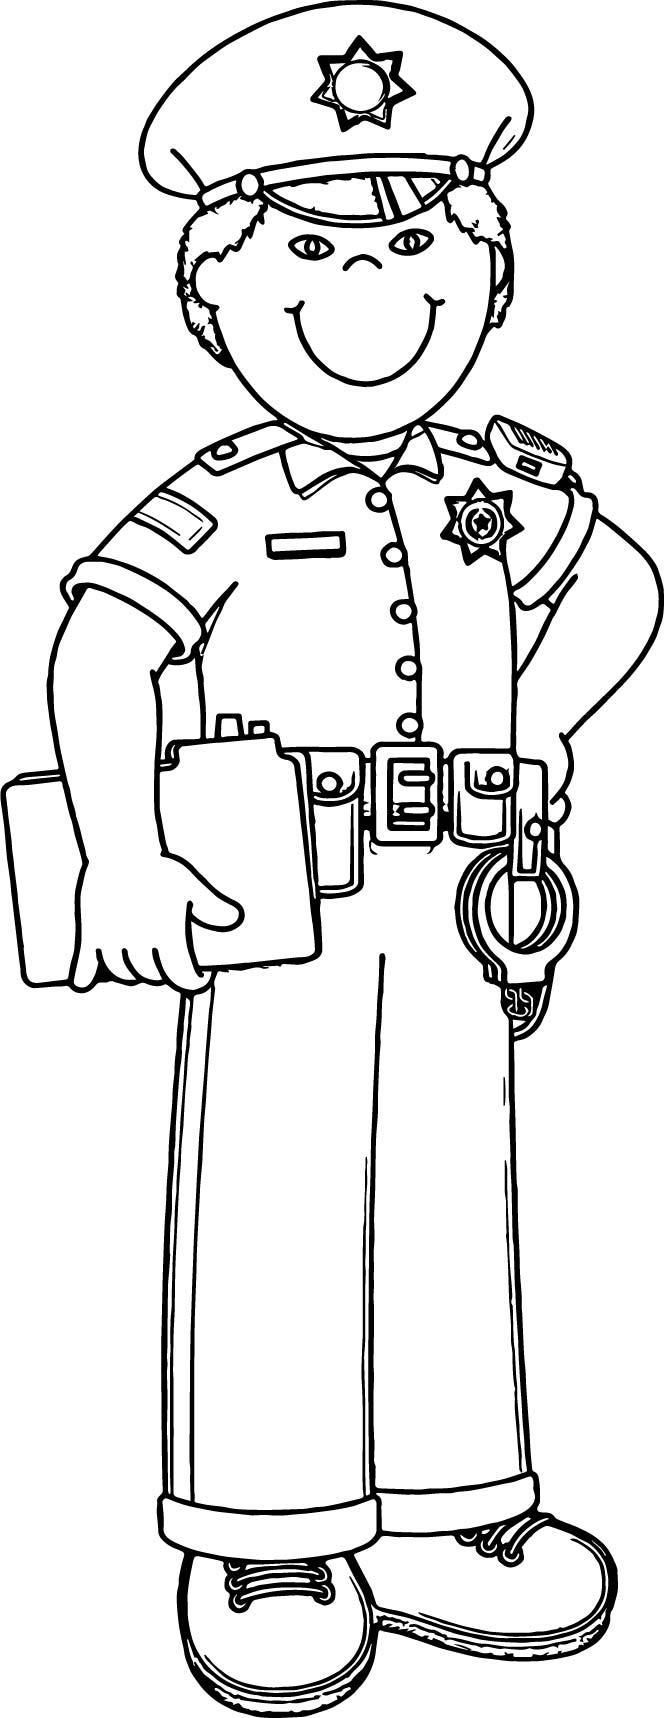 cops coloring pages - photo#23